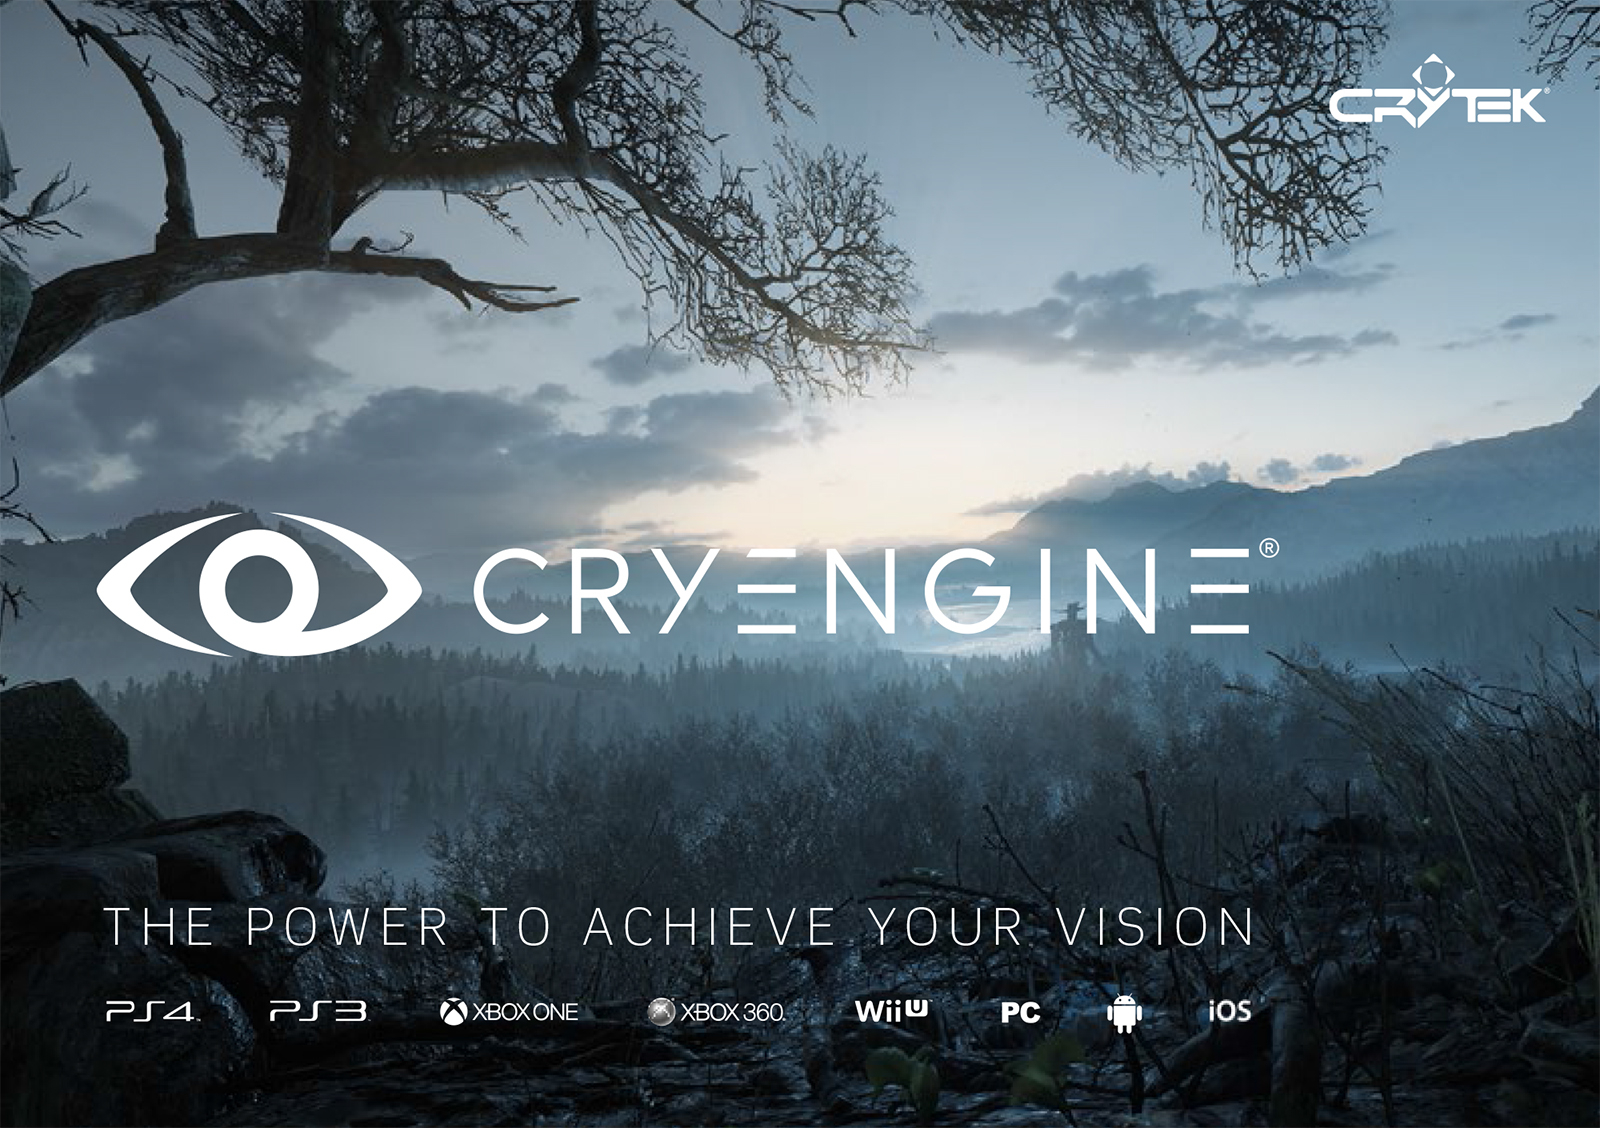 Unreal Engine 4 and CryEngine introduce subscription service for